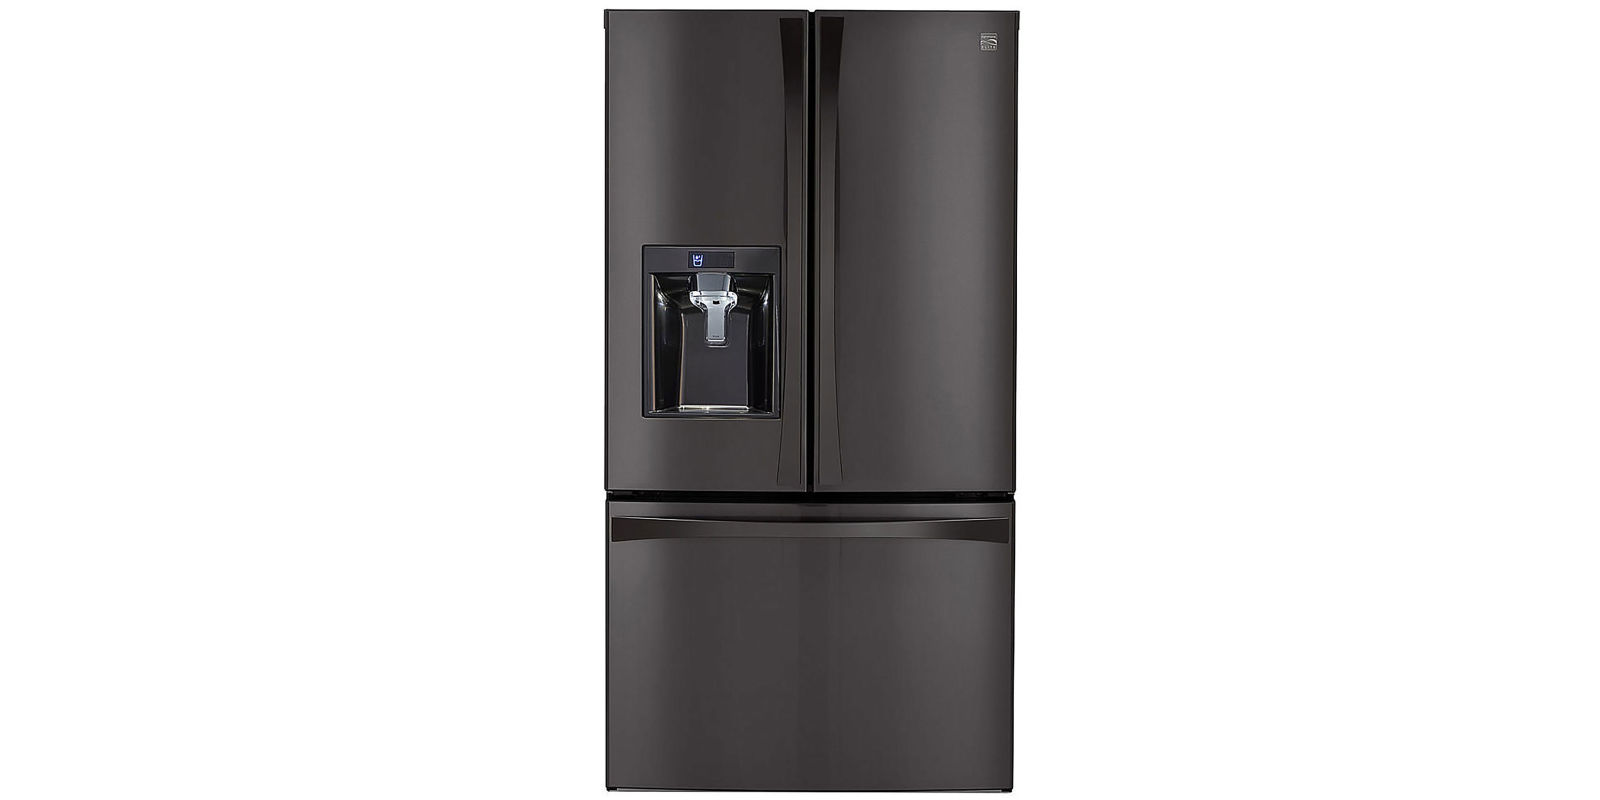 kenmore freezer. kenmore elite 29.8 cu. ft. french door bottom-freezer refrigerator 74027 review, price and features \u2013 pros cons of freezer